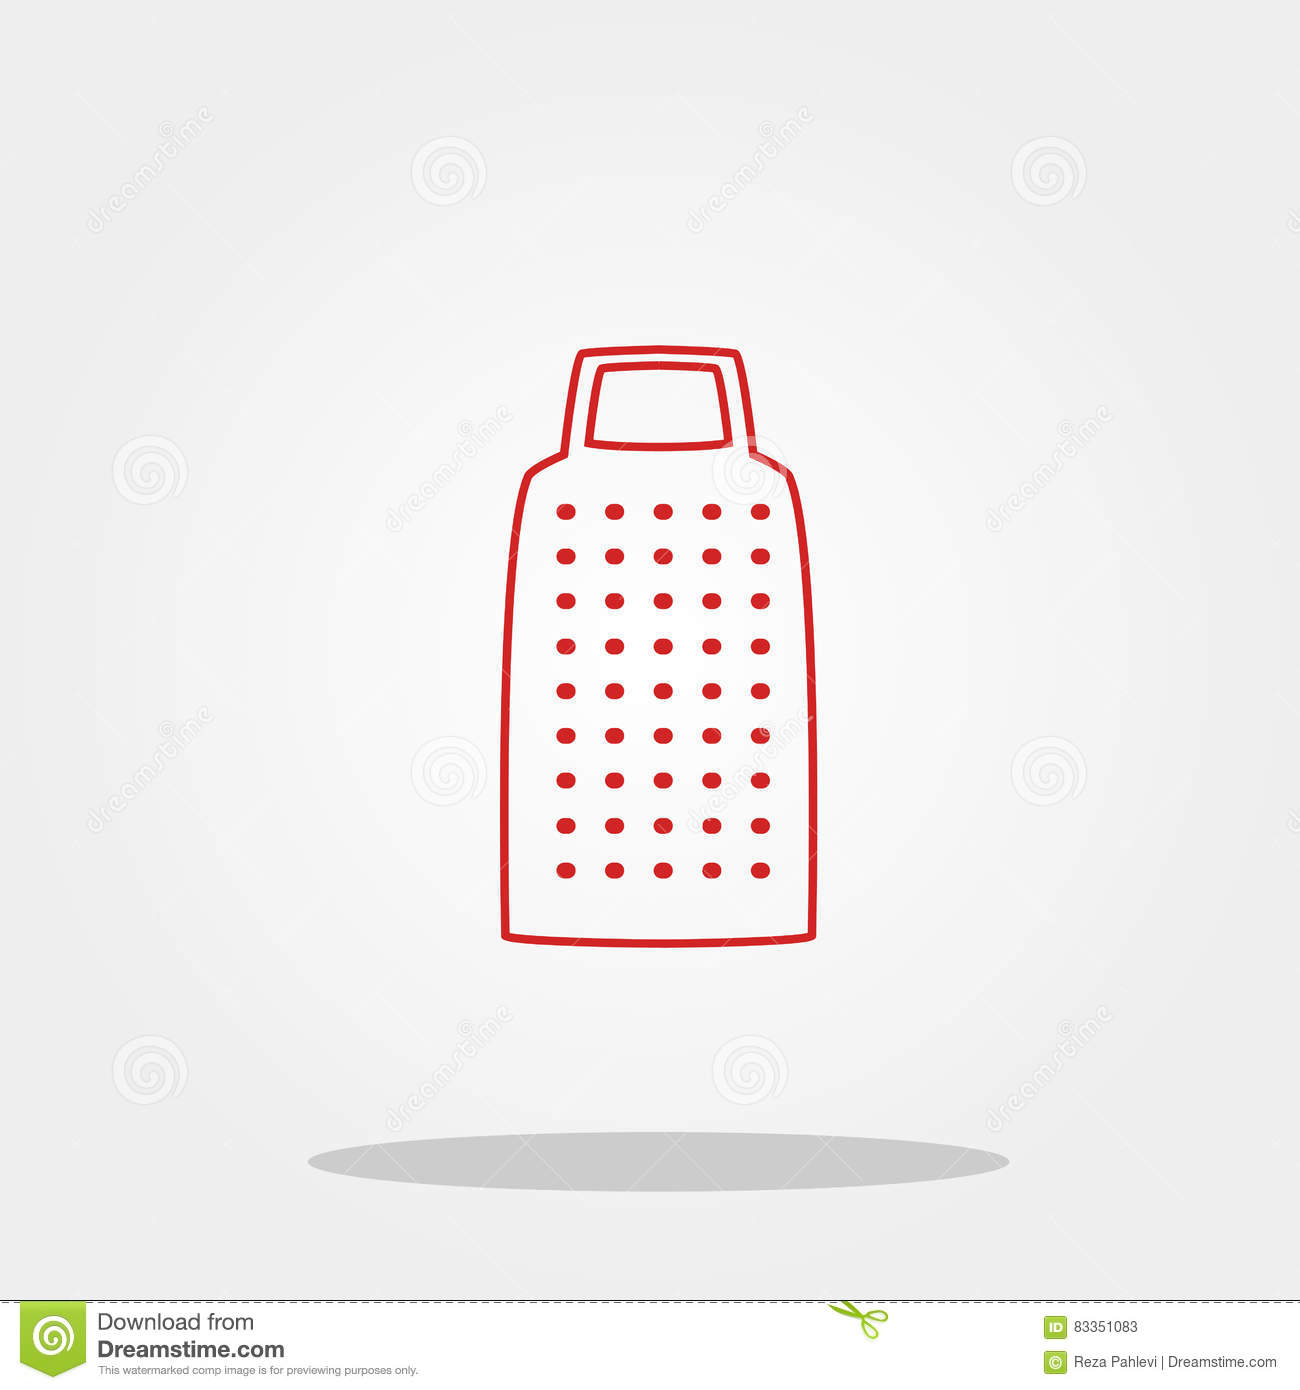 Grater Cute Icon In Trendy Flat Style Isolated On Color Background.  Kitchenware Symbol For Your